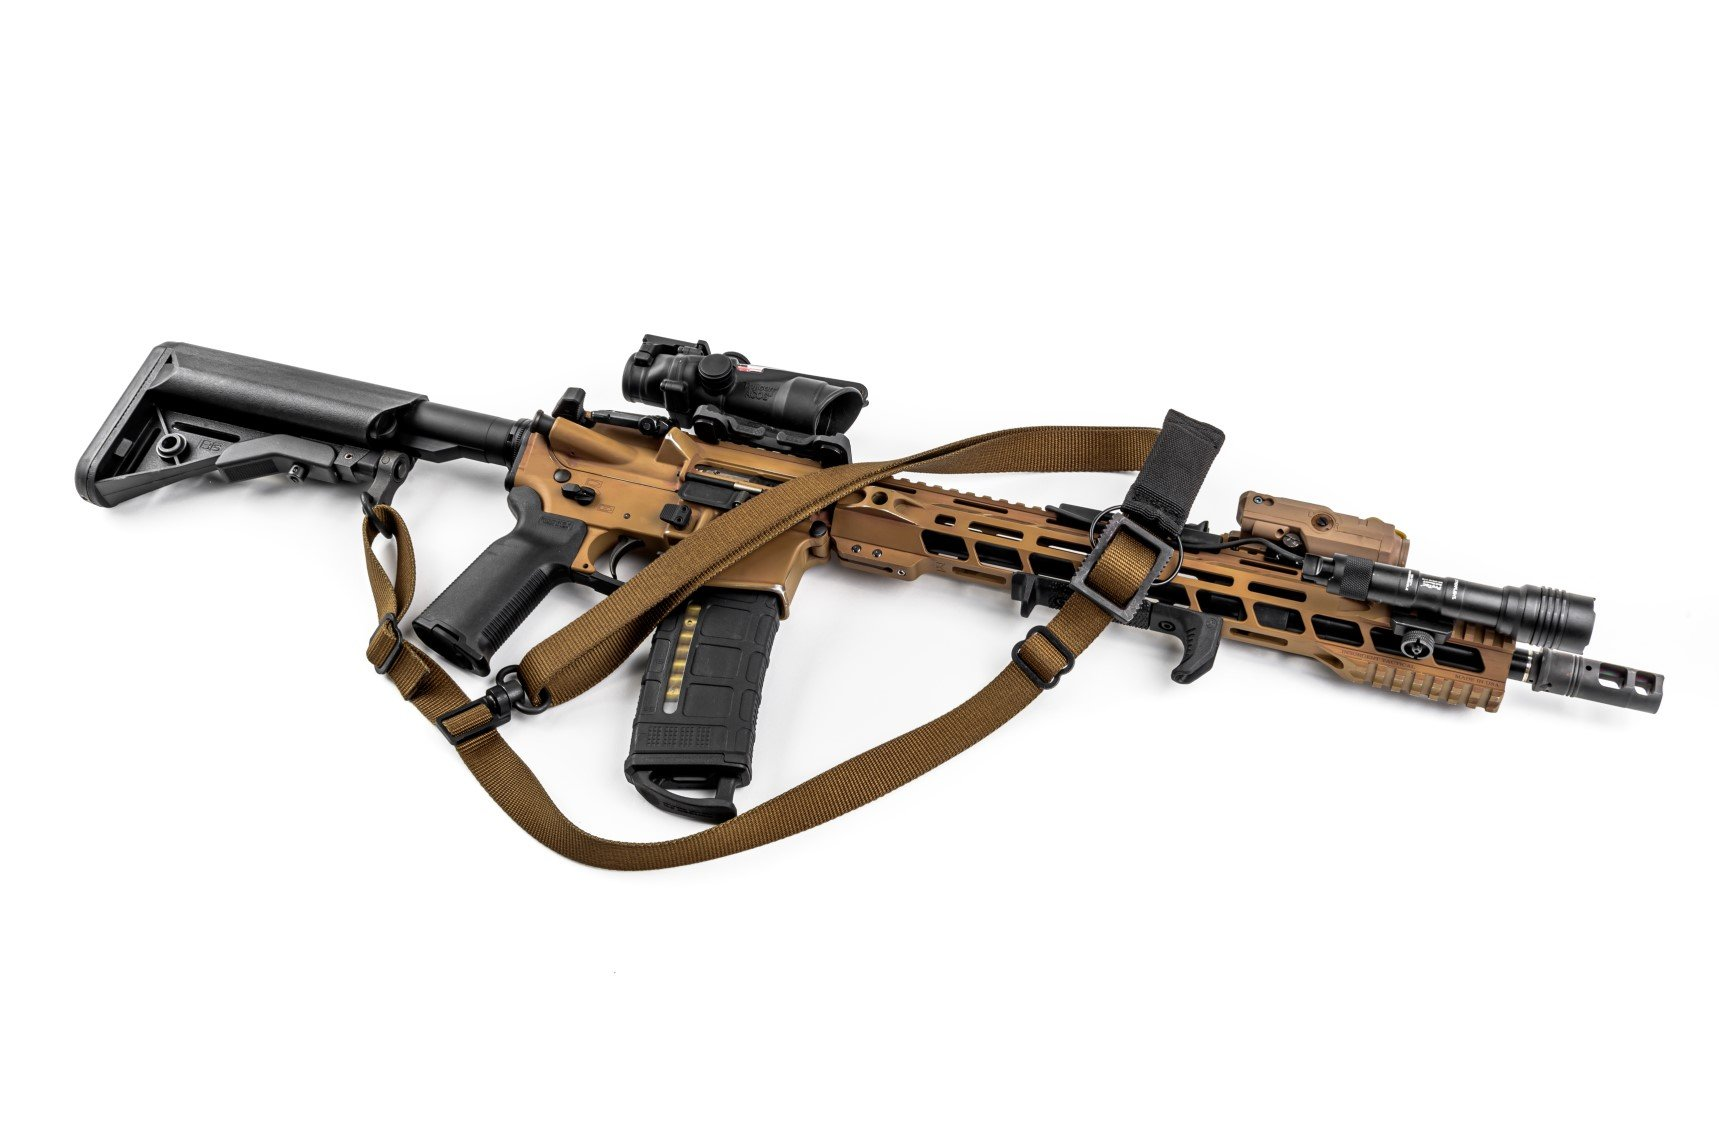 Swinger T10 Sling System Available Now from Tech Ten Tactical